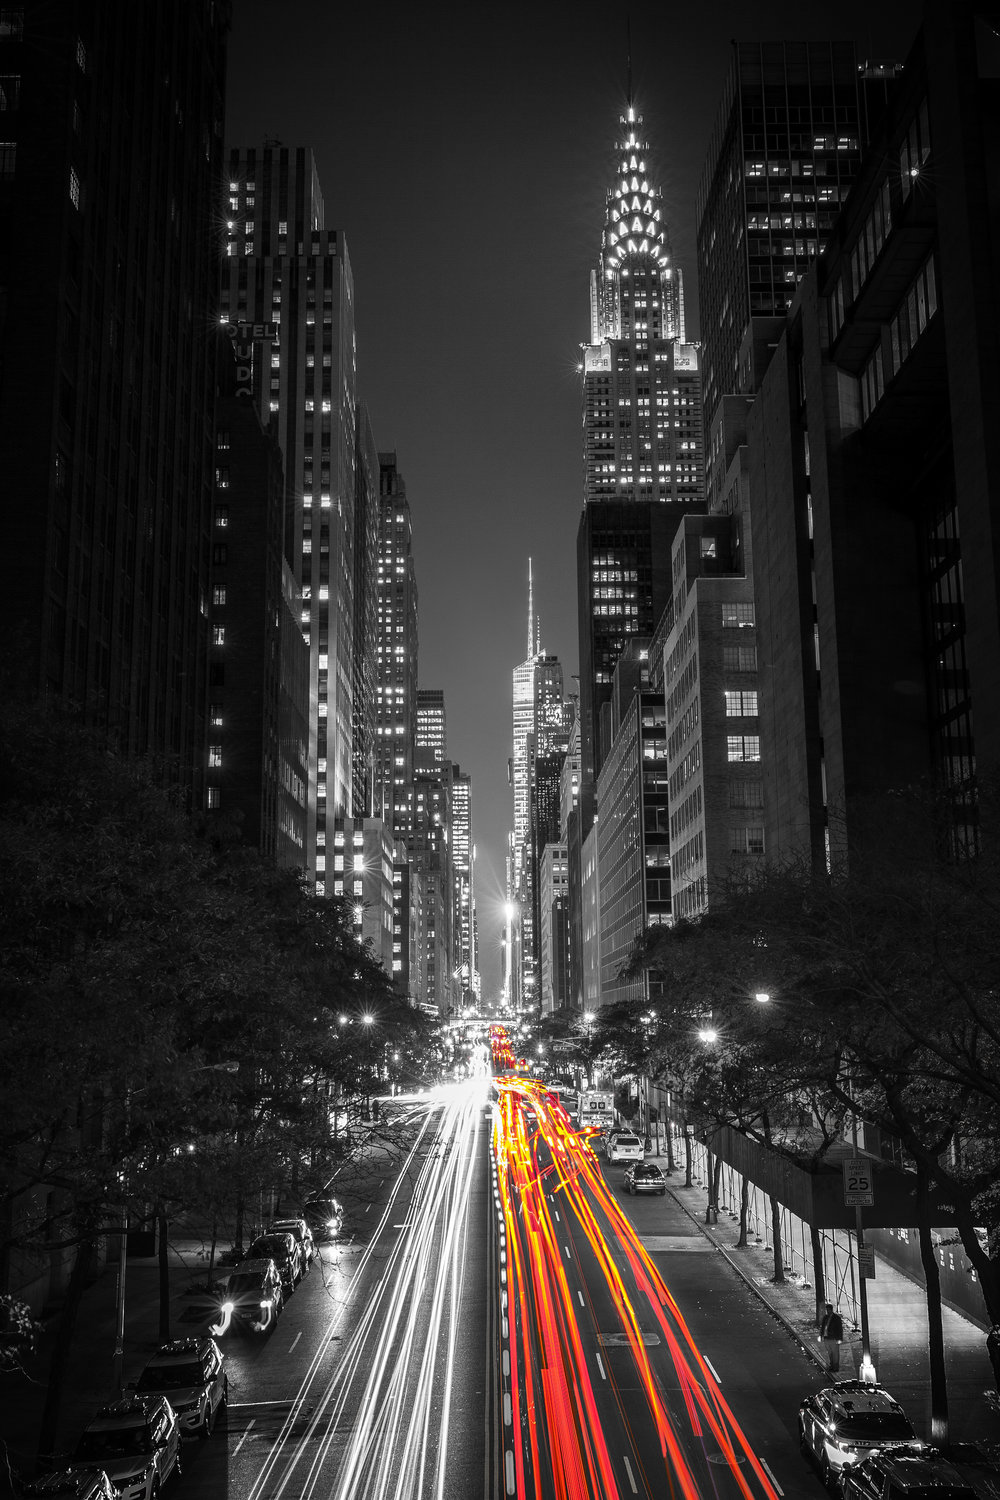 42nd street, New York City